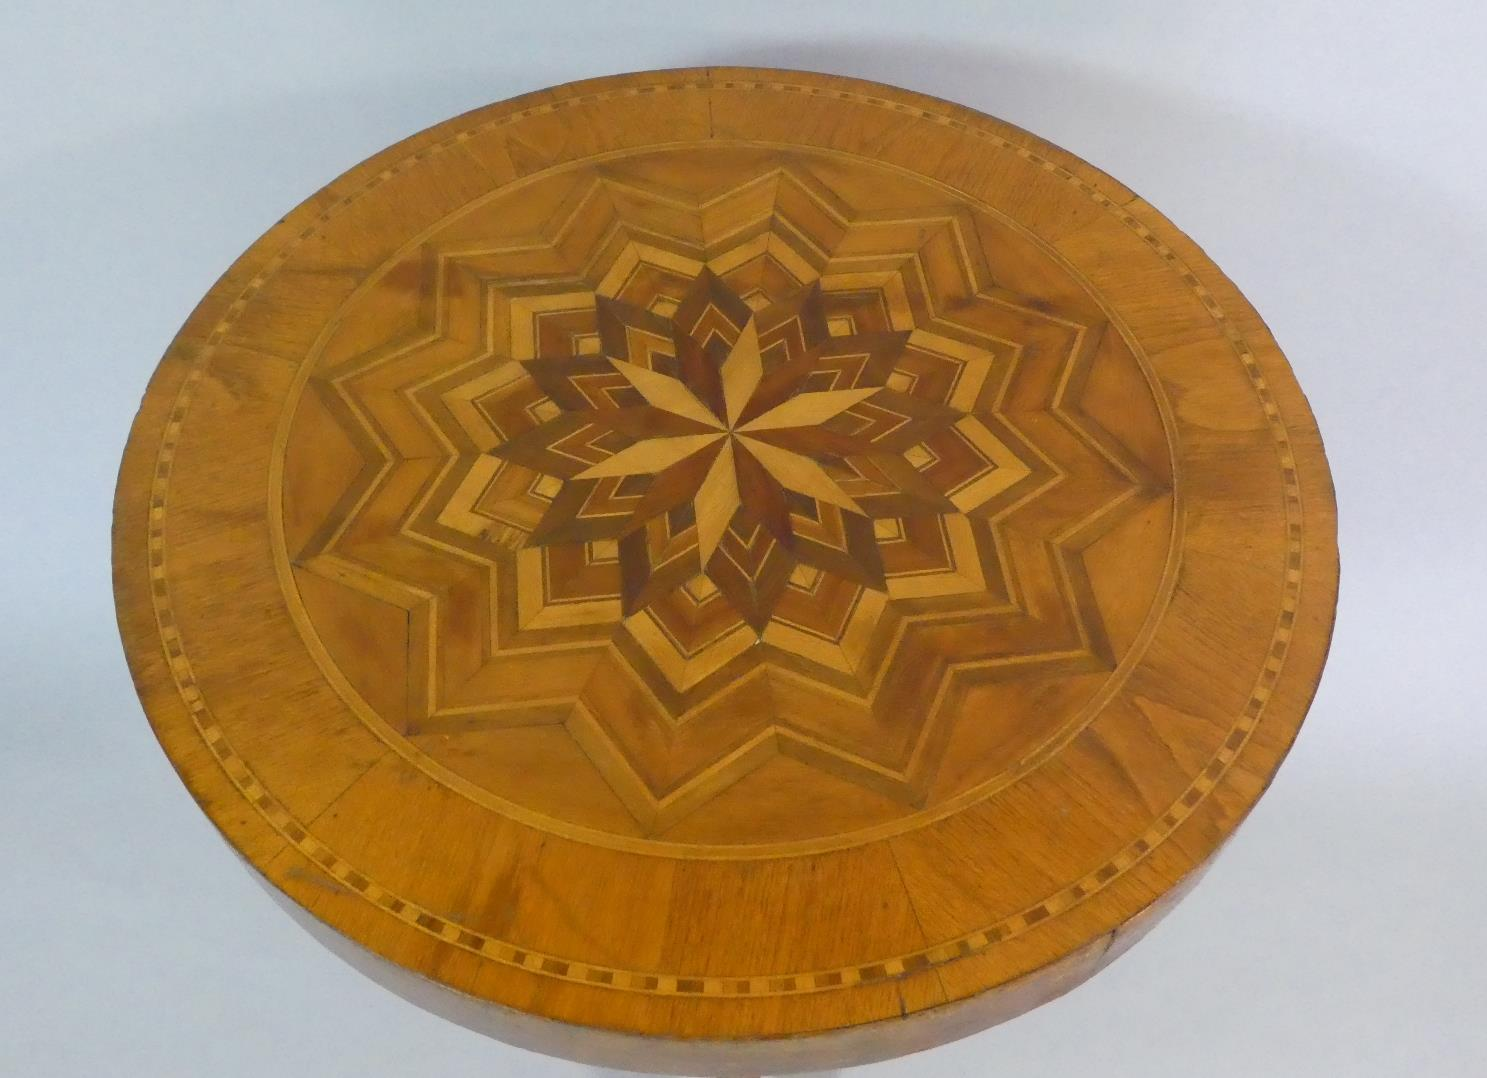 A Late 19th/Early 20th Century Italian Sorrento Ware Pedestal Table with a Parquetry Starburst - Image 2 of 2